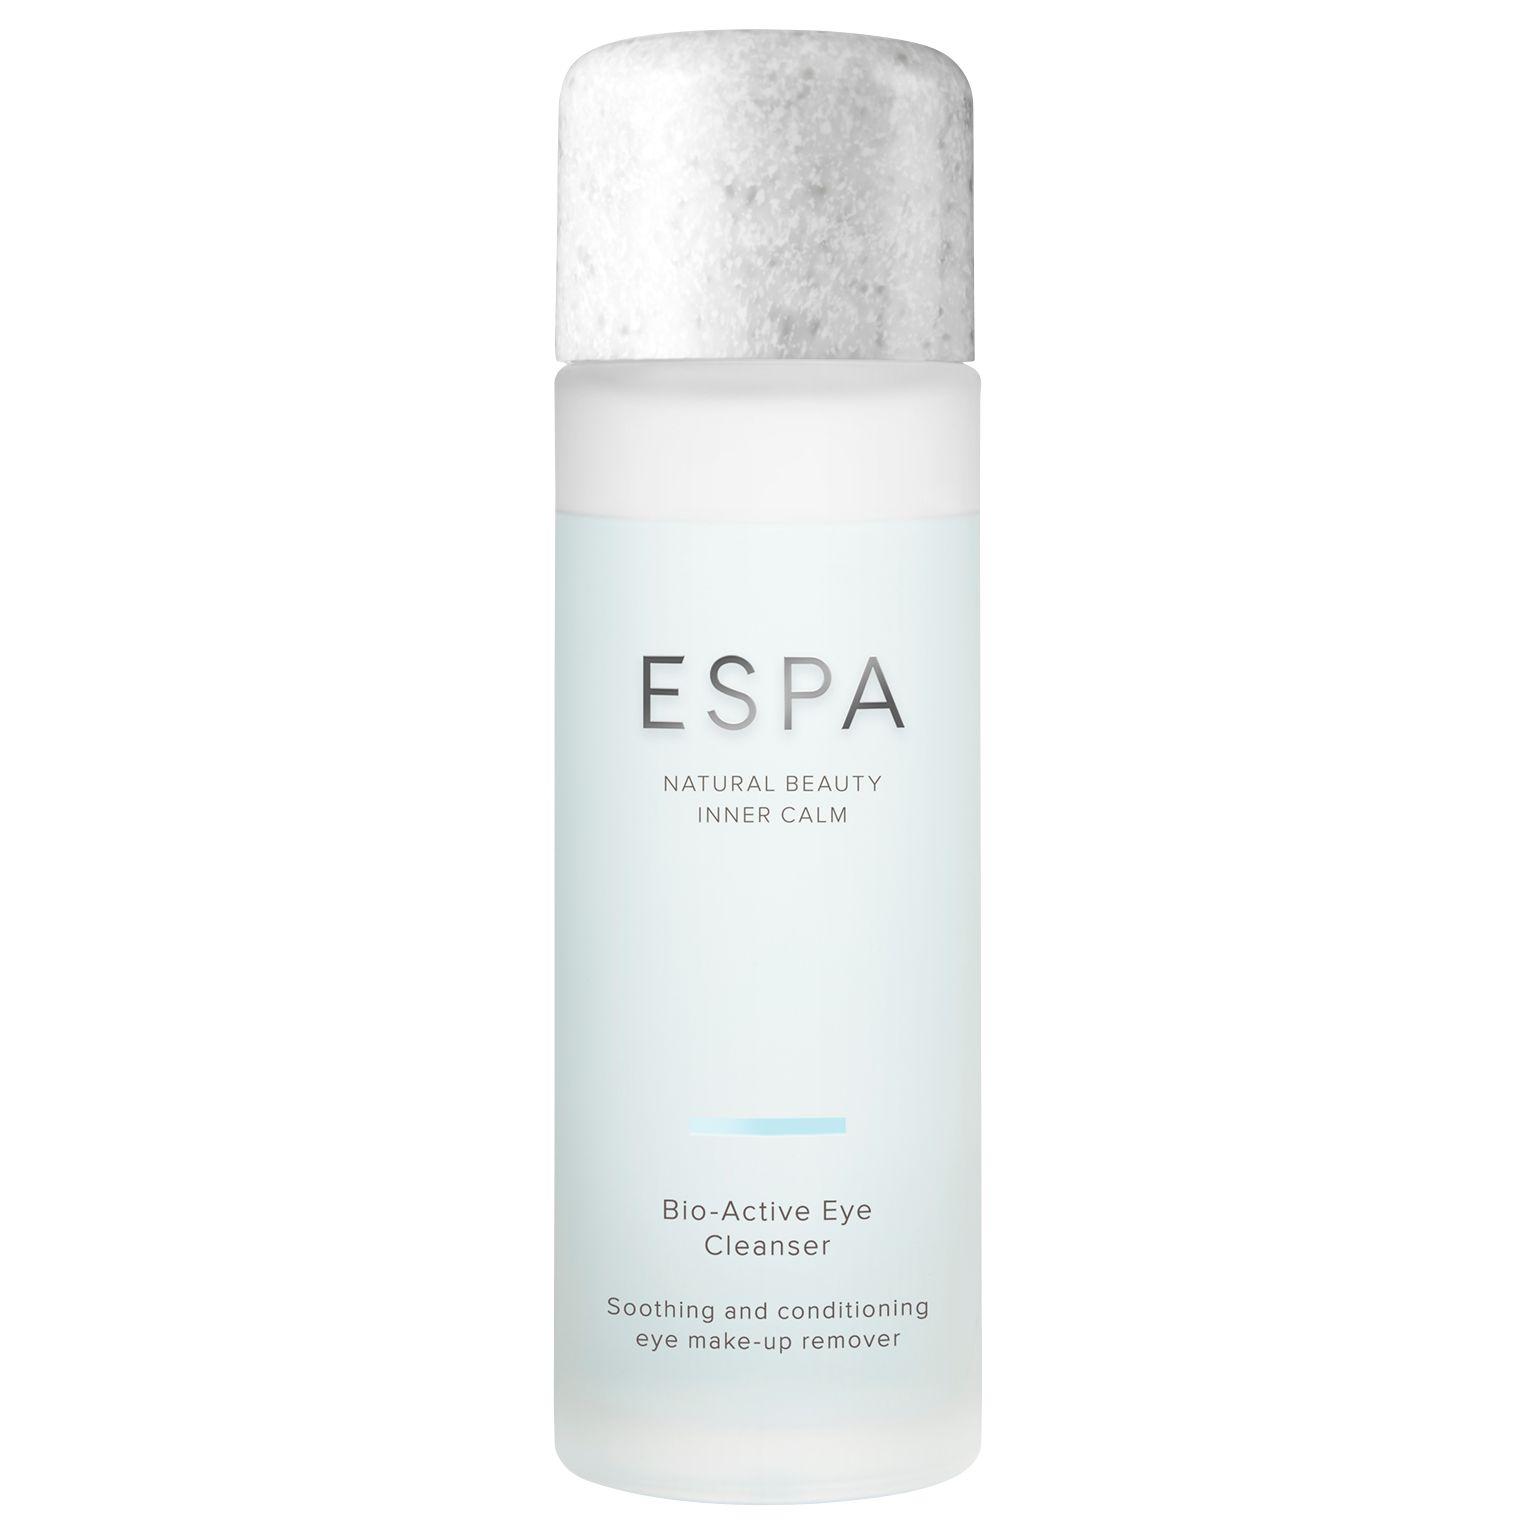 ESPA ESPA Bio-Active Eye Cleanser, 100ml